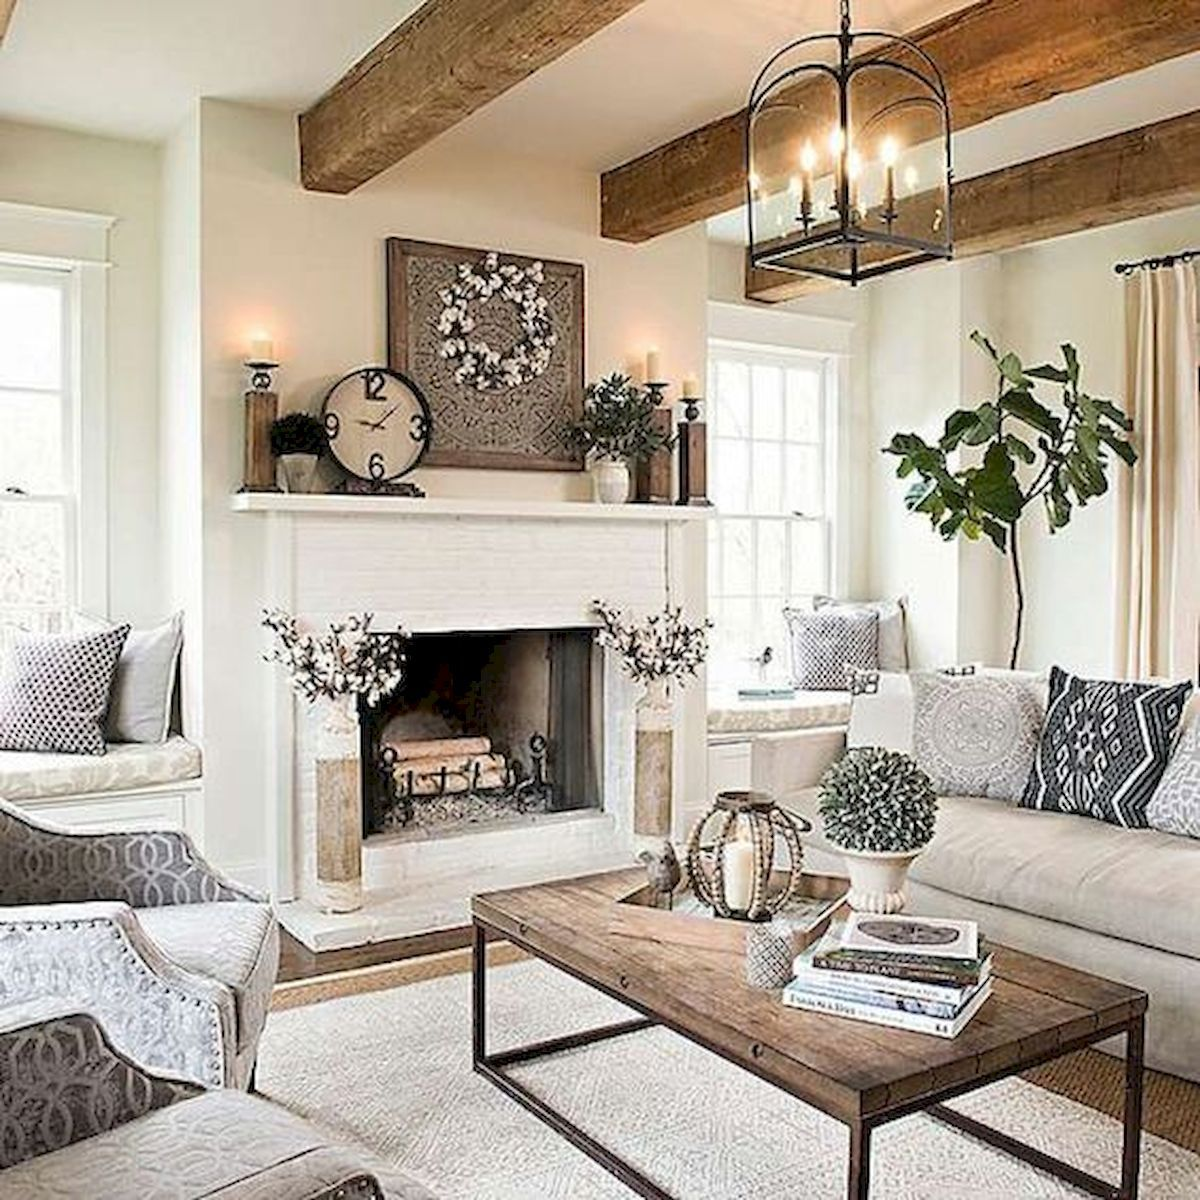 Adorable 30 Stunning Farmhouse Living Room Decor Ideas Https Coachdecor Modern Farmhouse Living Room Decor Farmhouse Decor Living Room Farm House Living Room